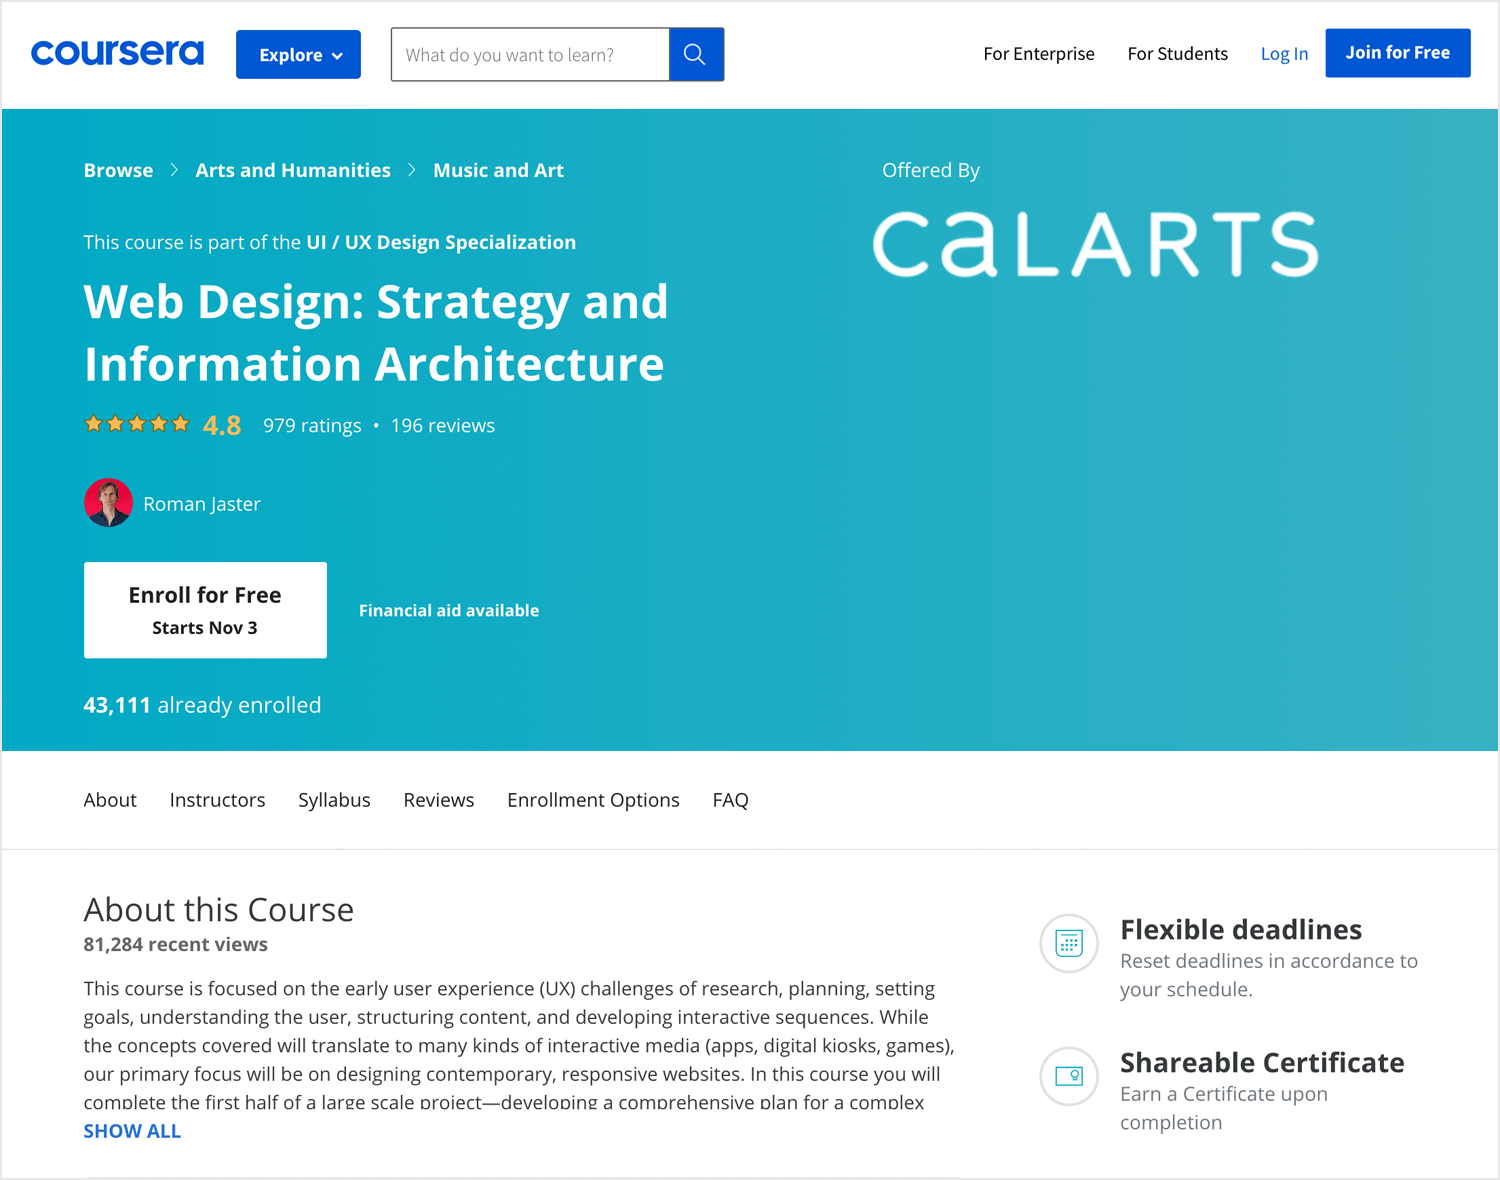 web design strategy course by coursera